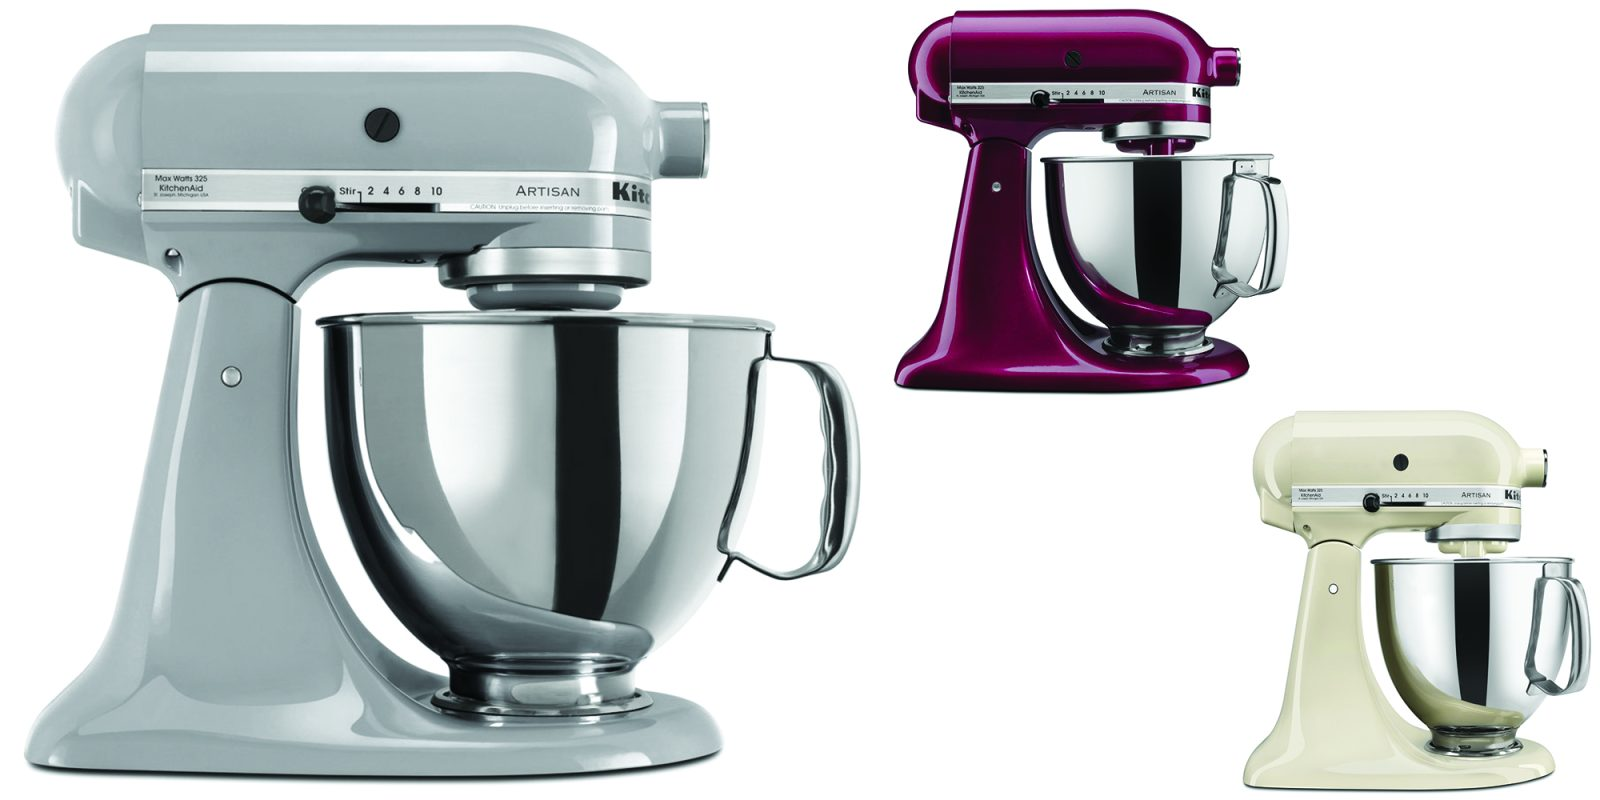 kitchenaid artisan series 5 qt mixers drop to 224 for black friday 9to5toys. Black Bedroom Furniture Sets. Home Design Ideas